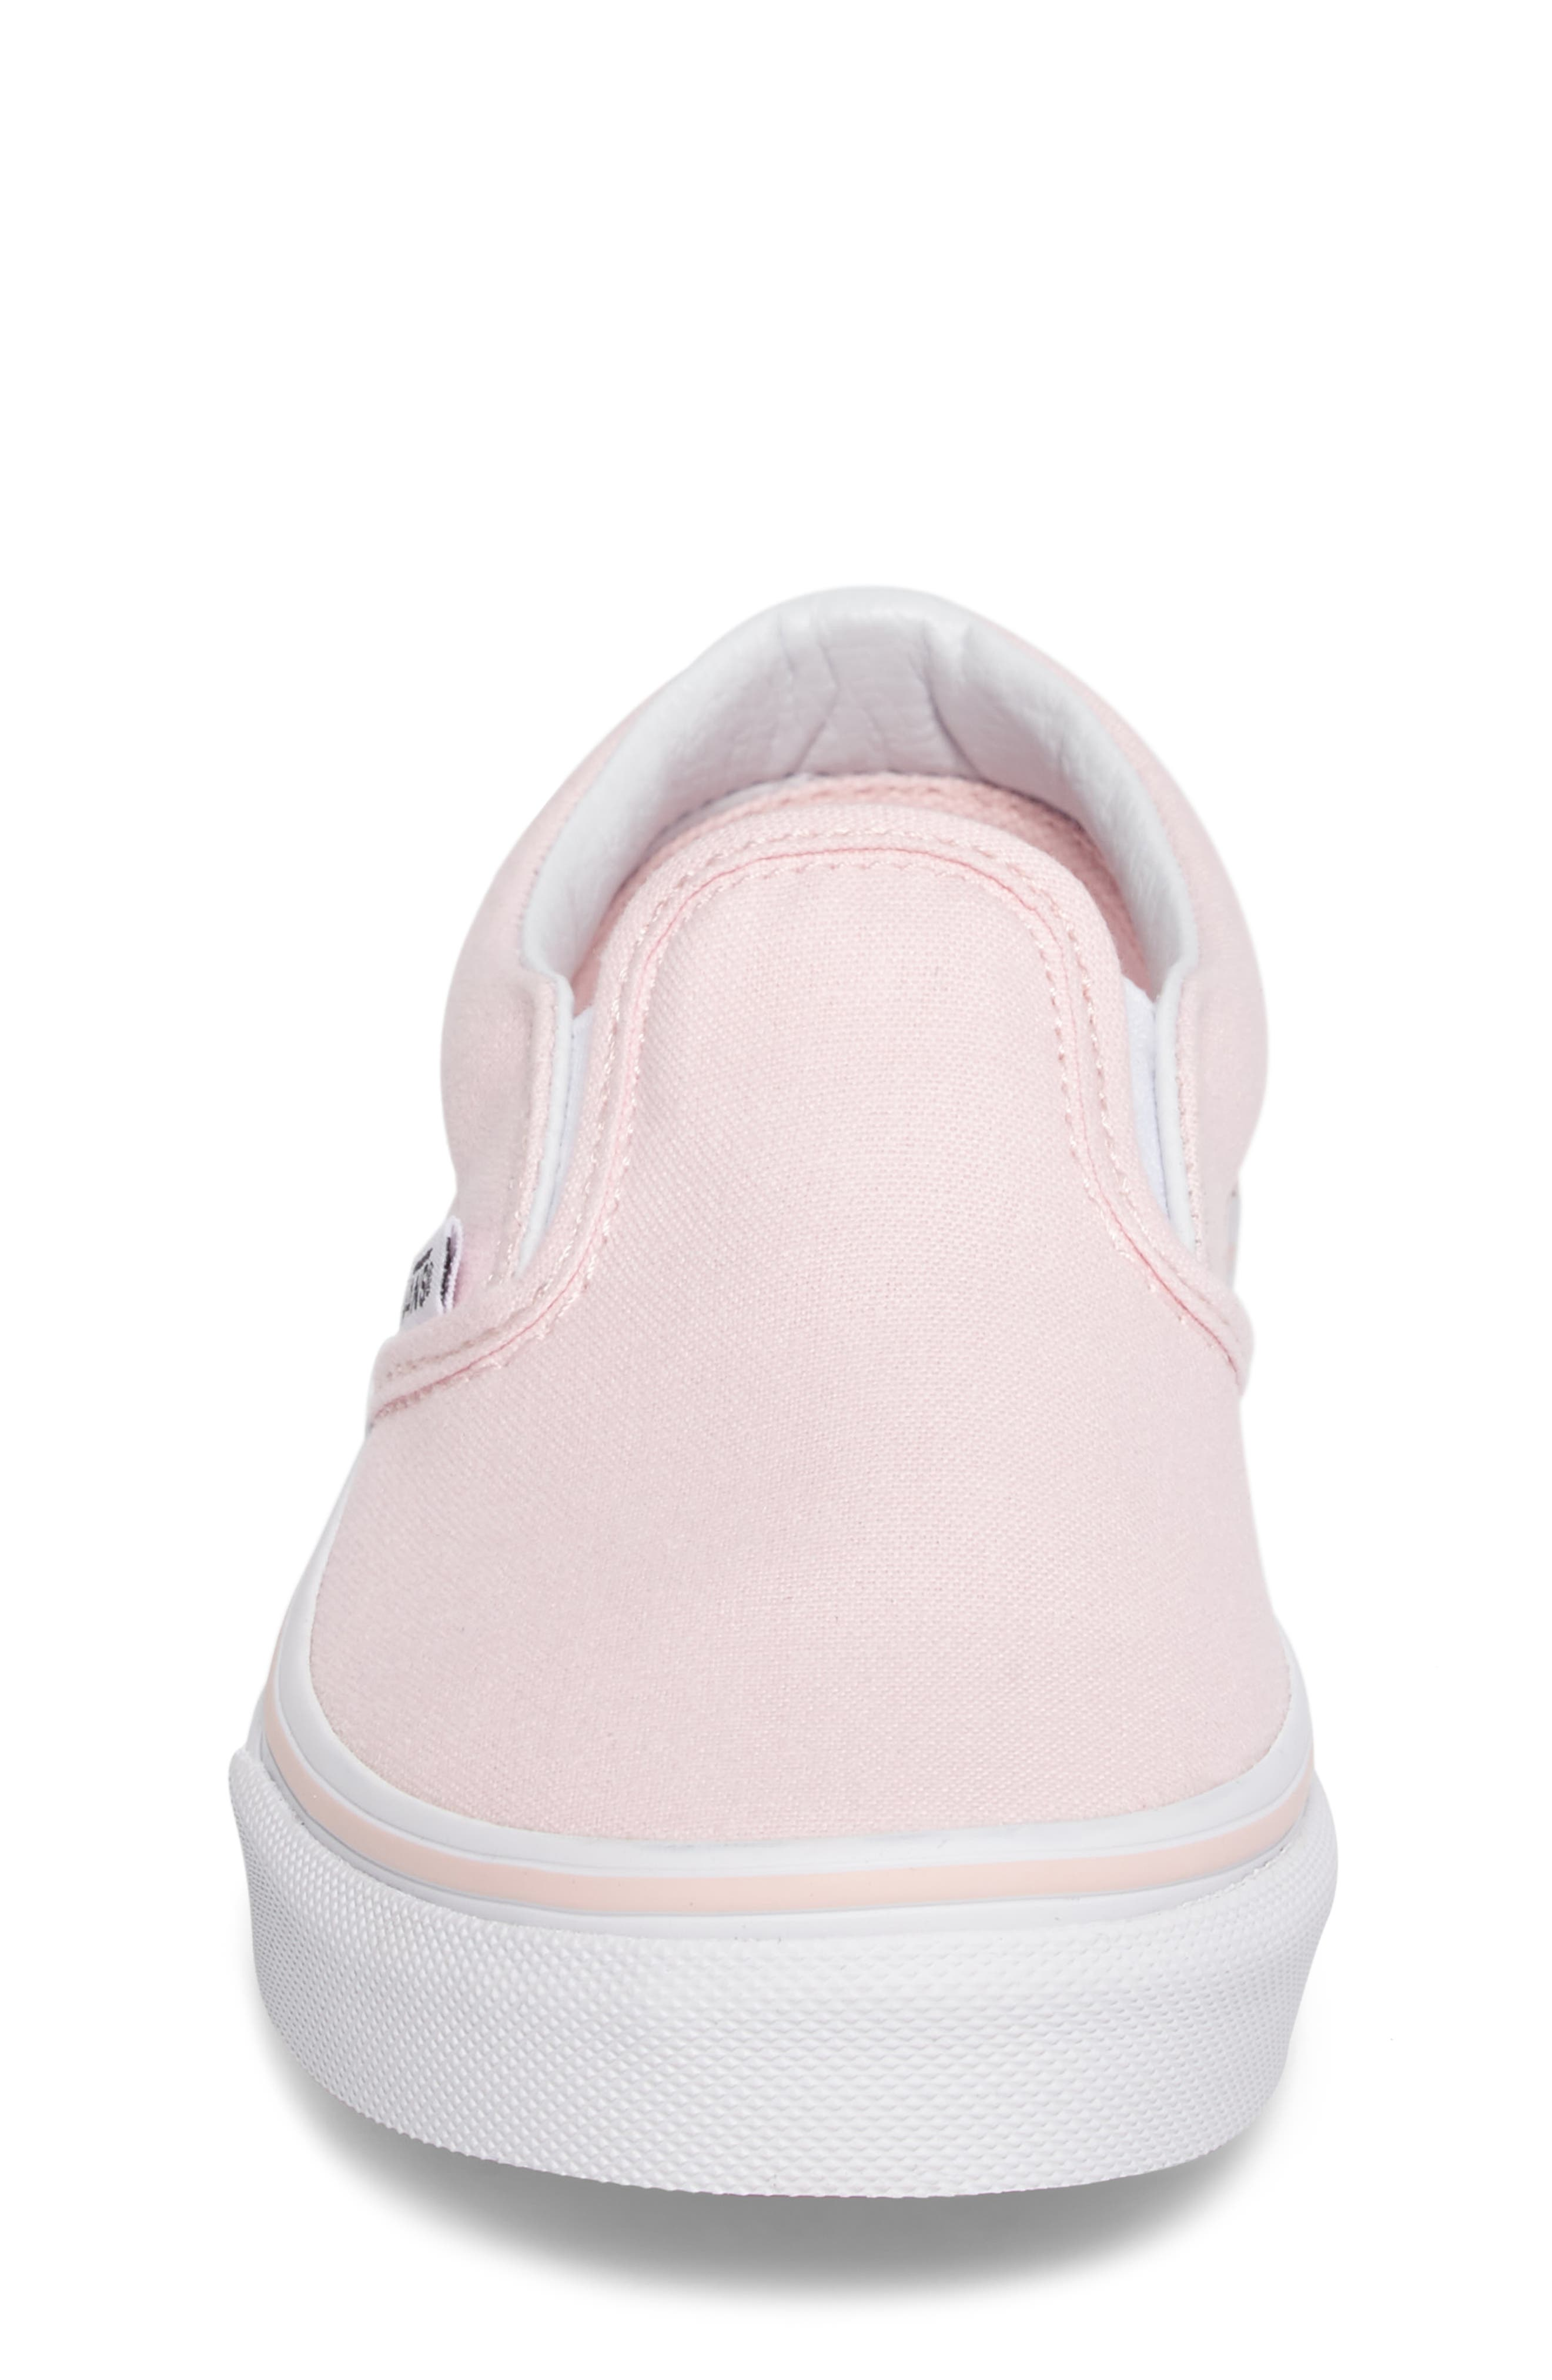 Classic Slip-On Sneaker,                             Alternate thumbnail 4, color,                             Ballerina/ True White